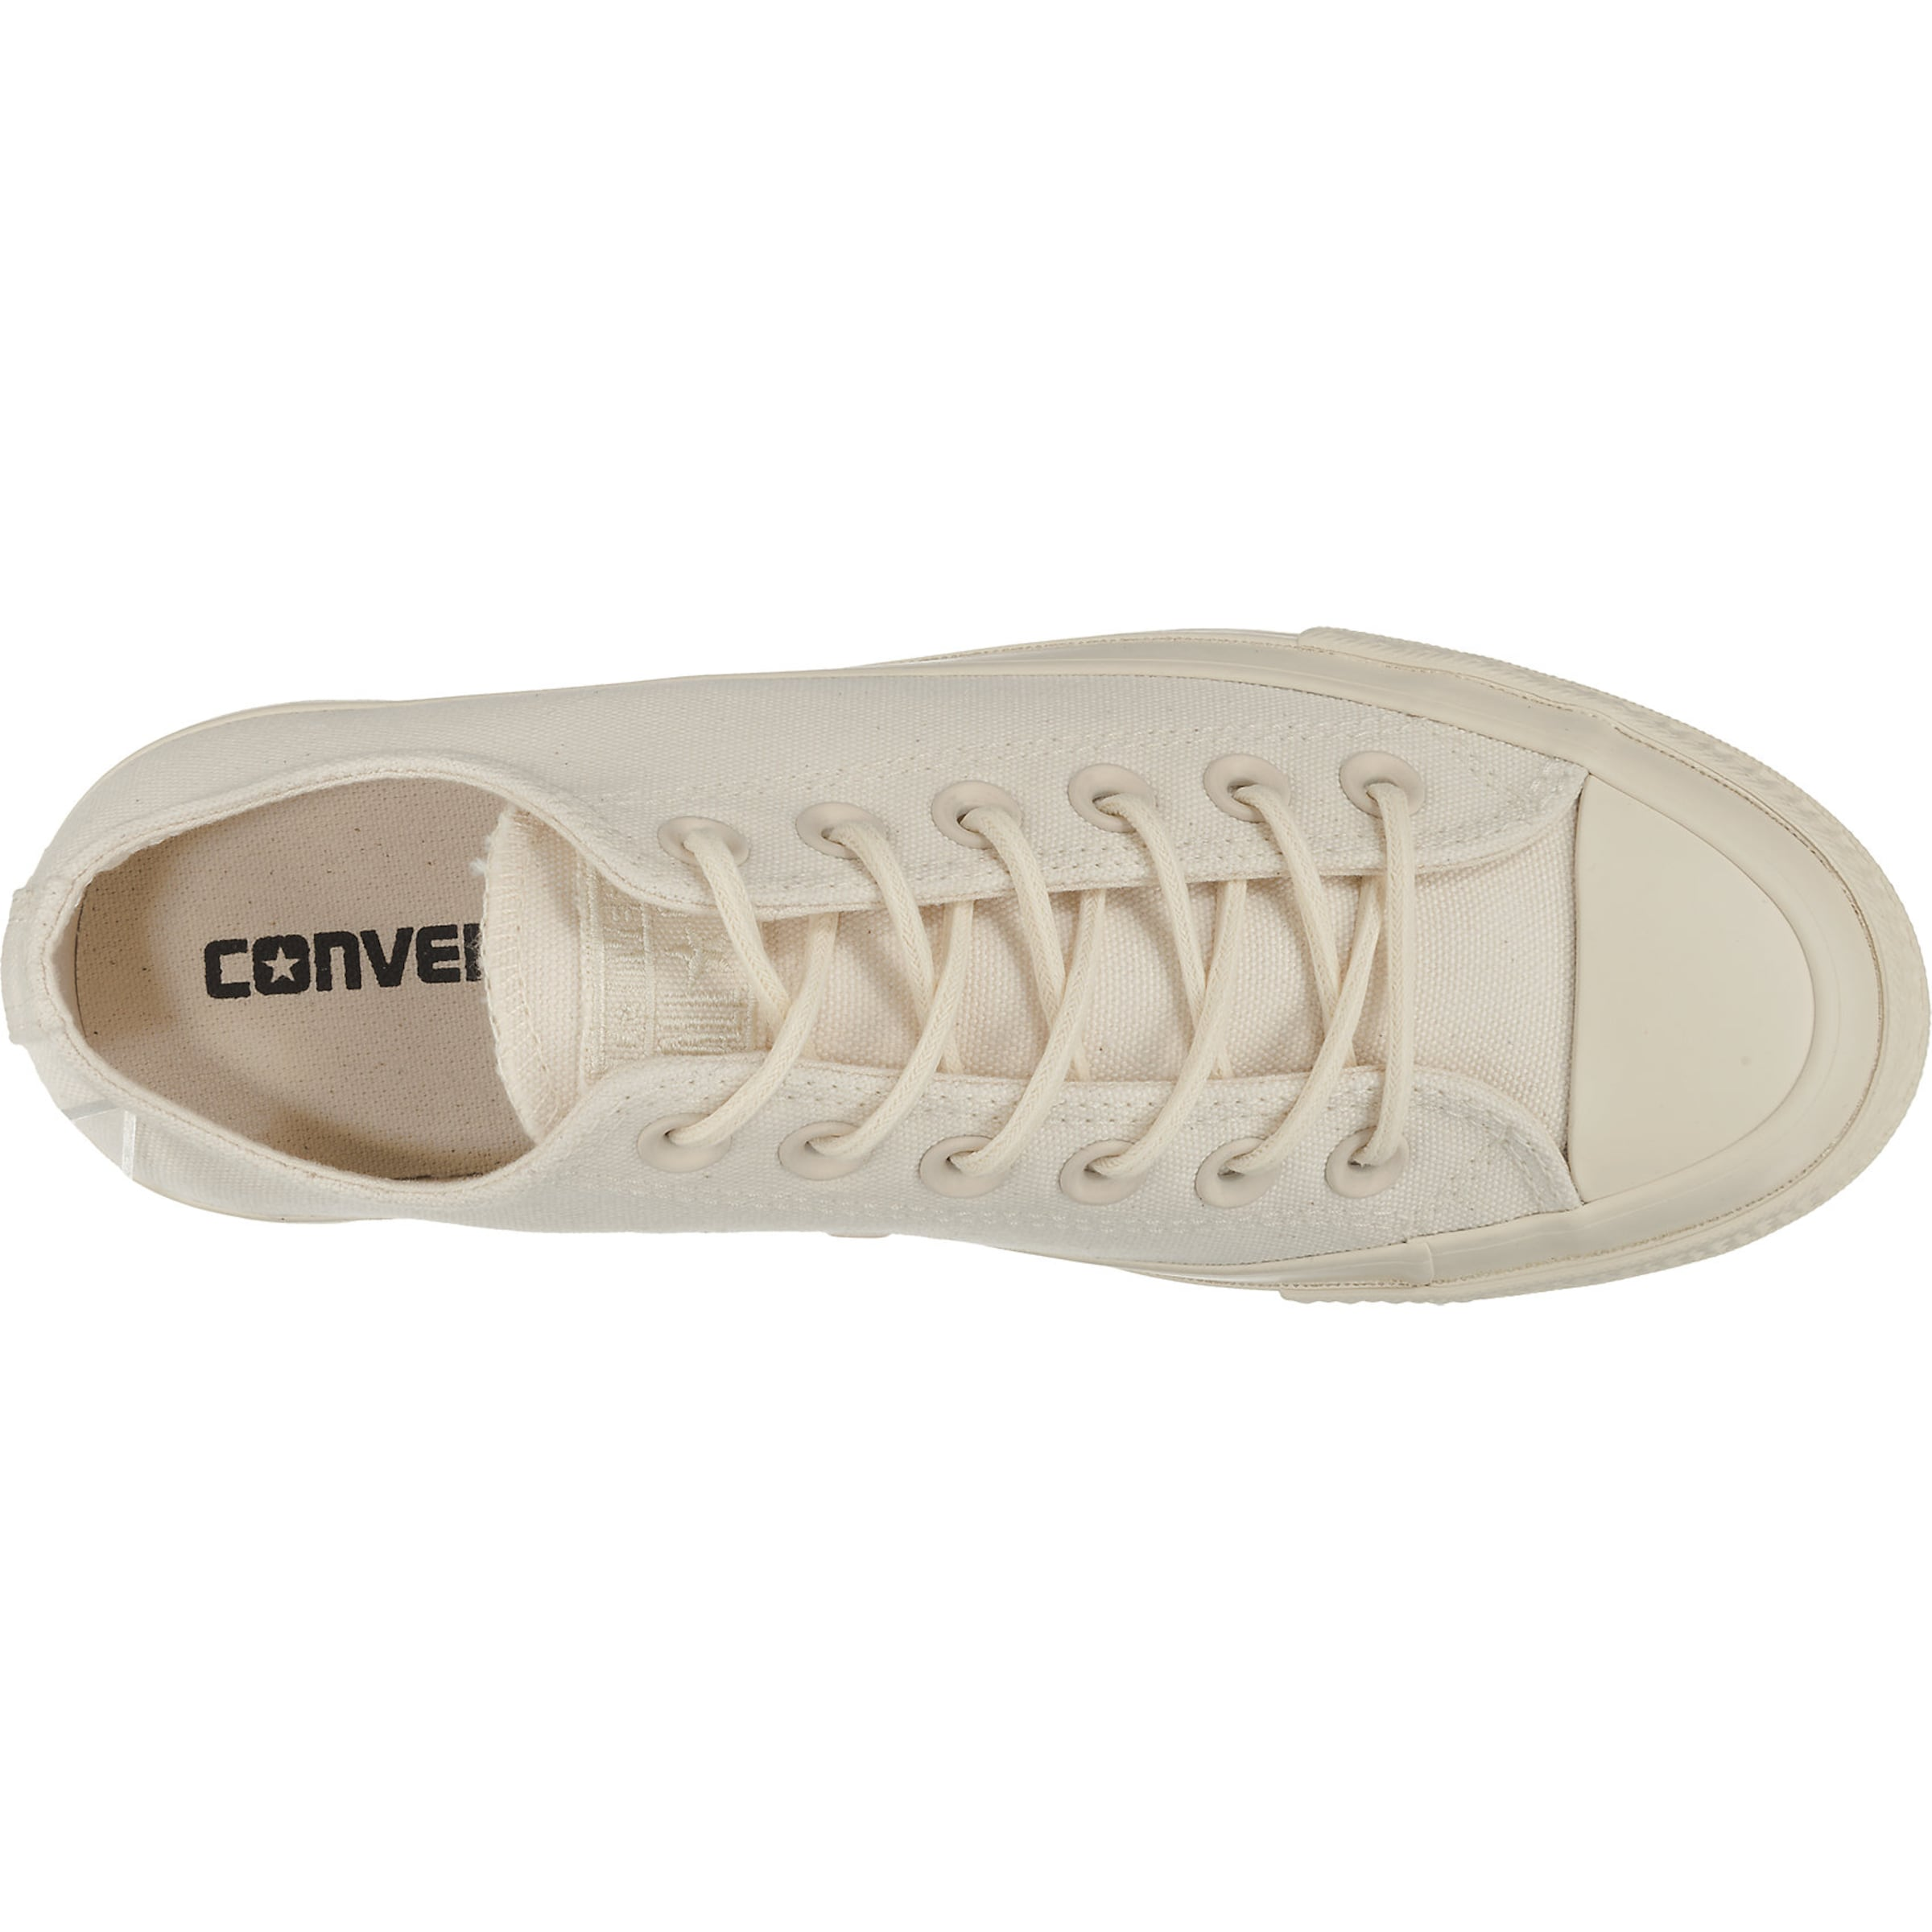 Naturweiß In Converse Converse Sneakers Sneakers In 7gv6bYfy